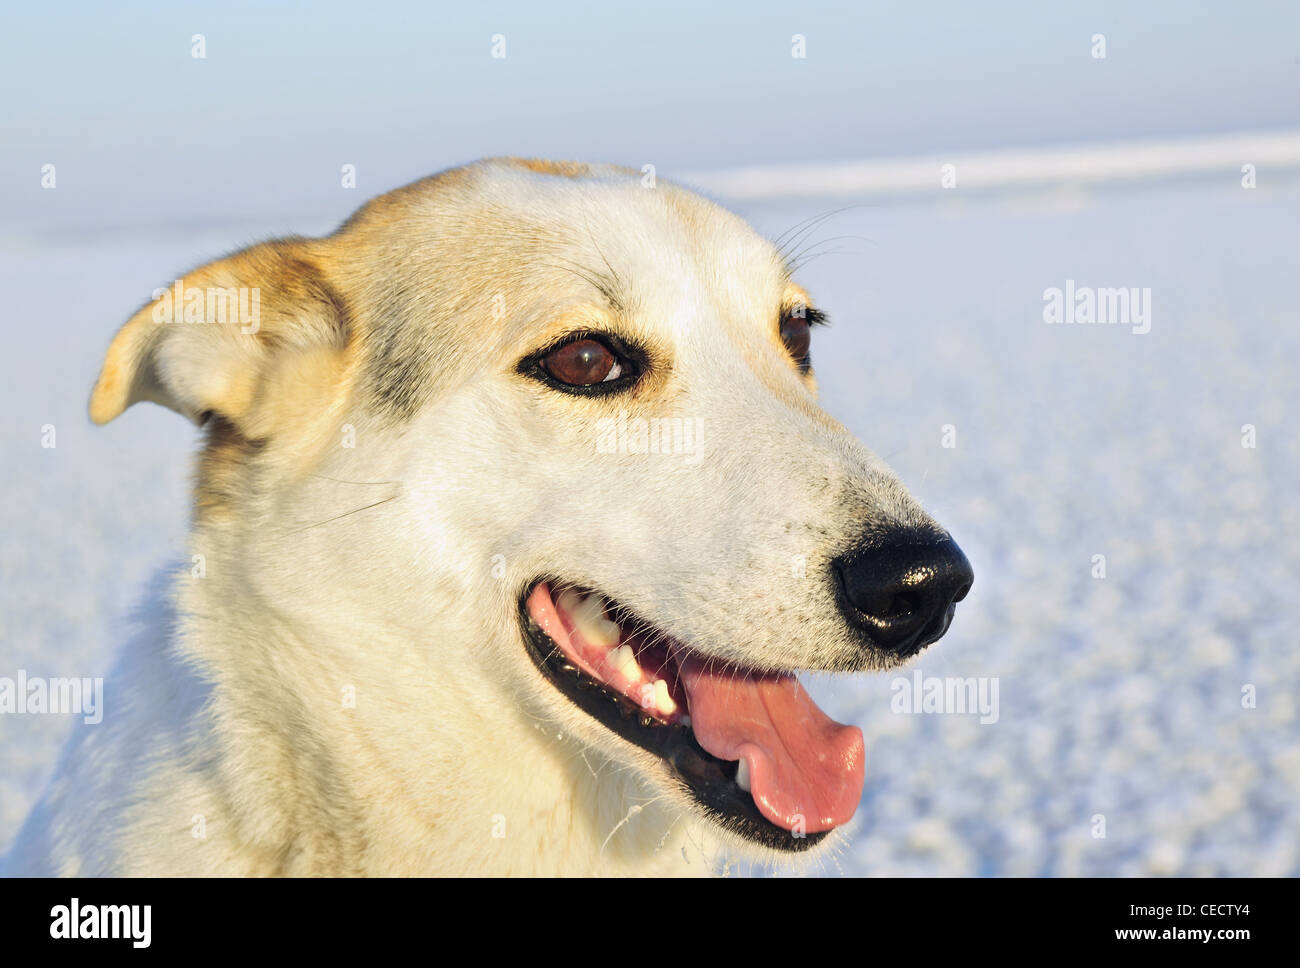 Portrait of a dog. A winter portrait of a hunting dog close up. (Canis lupus familiaris) - Stock Image